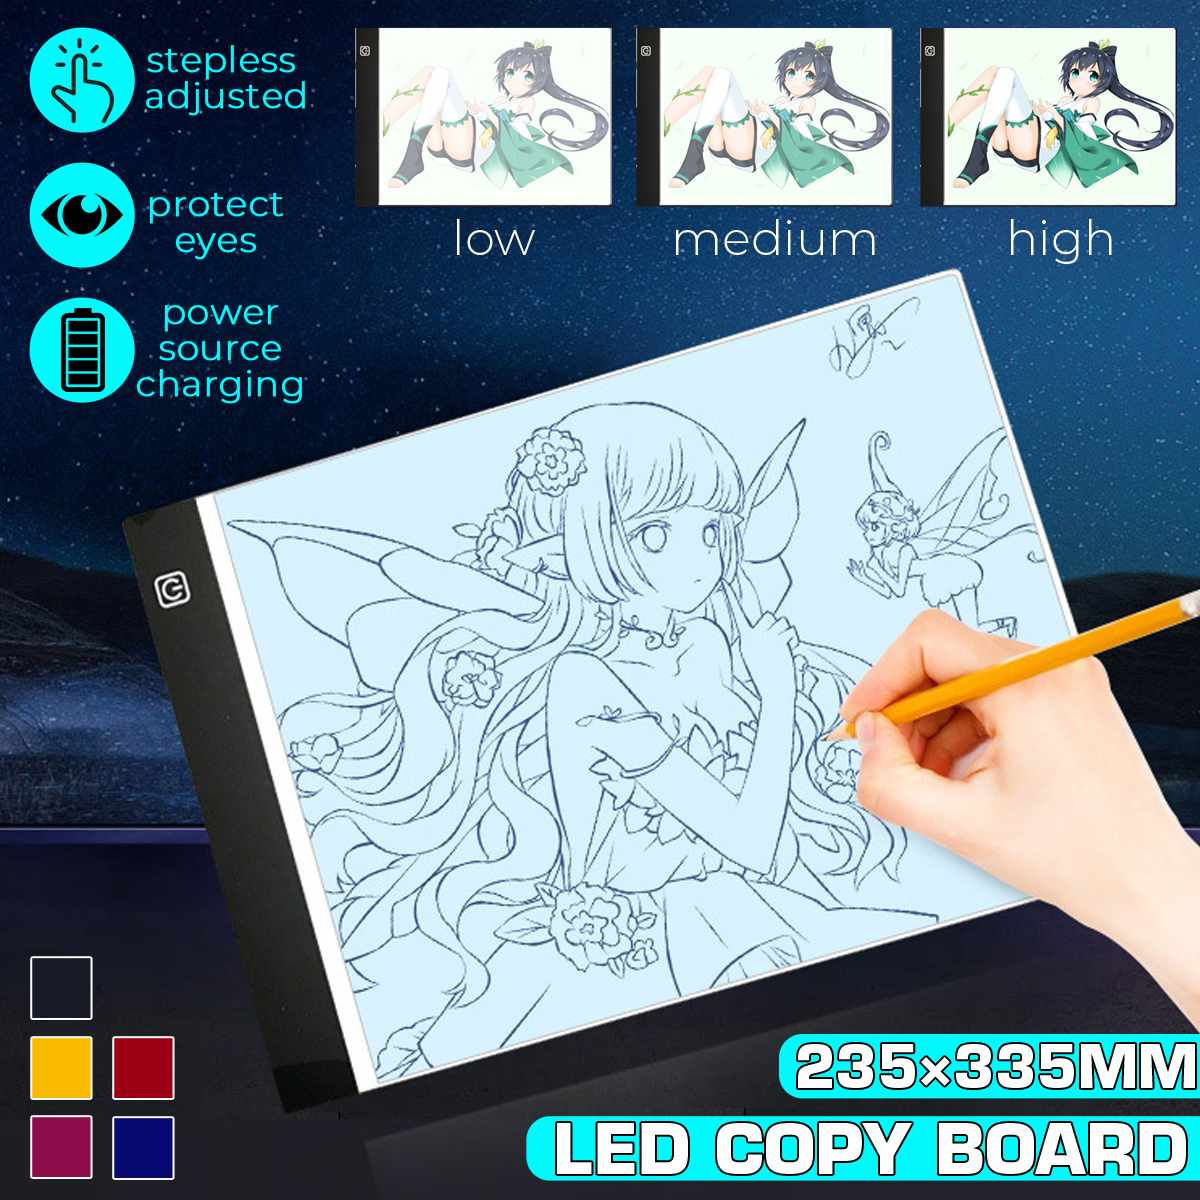 <font><b>A4</b></font> Stepless <font><b>Dimmable</b></font> Adjustable <font><b>LED</b></font> Drawing Tablet Copy Board <font><b>LED</b></font> <font><b>Light</b></font> Painting <font><b>Pad</b></font> Graphics Artist Thin Art Stencil Drawing image